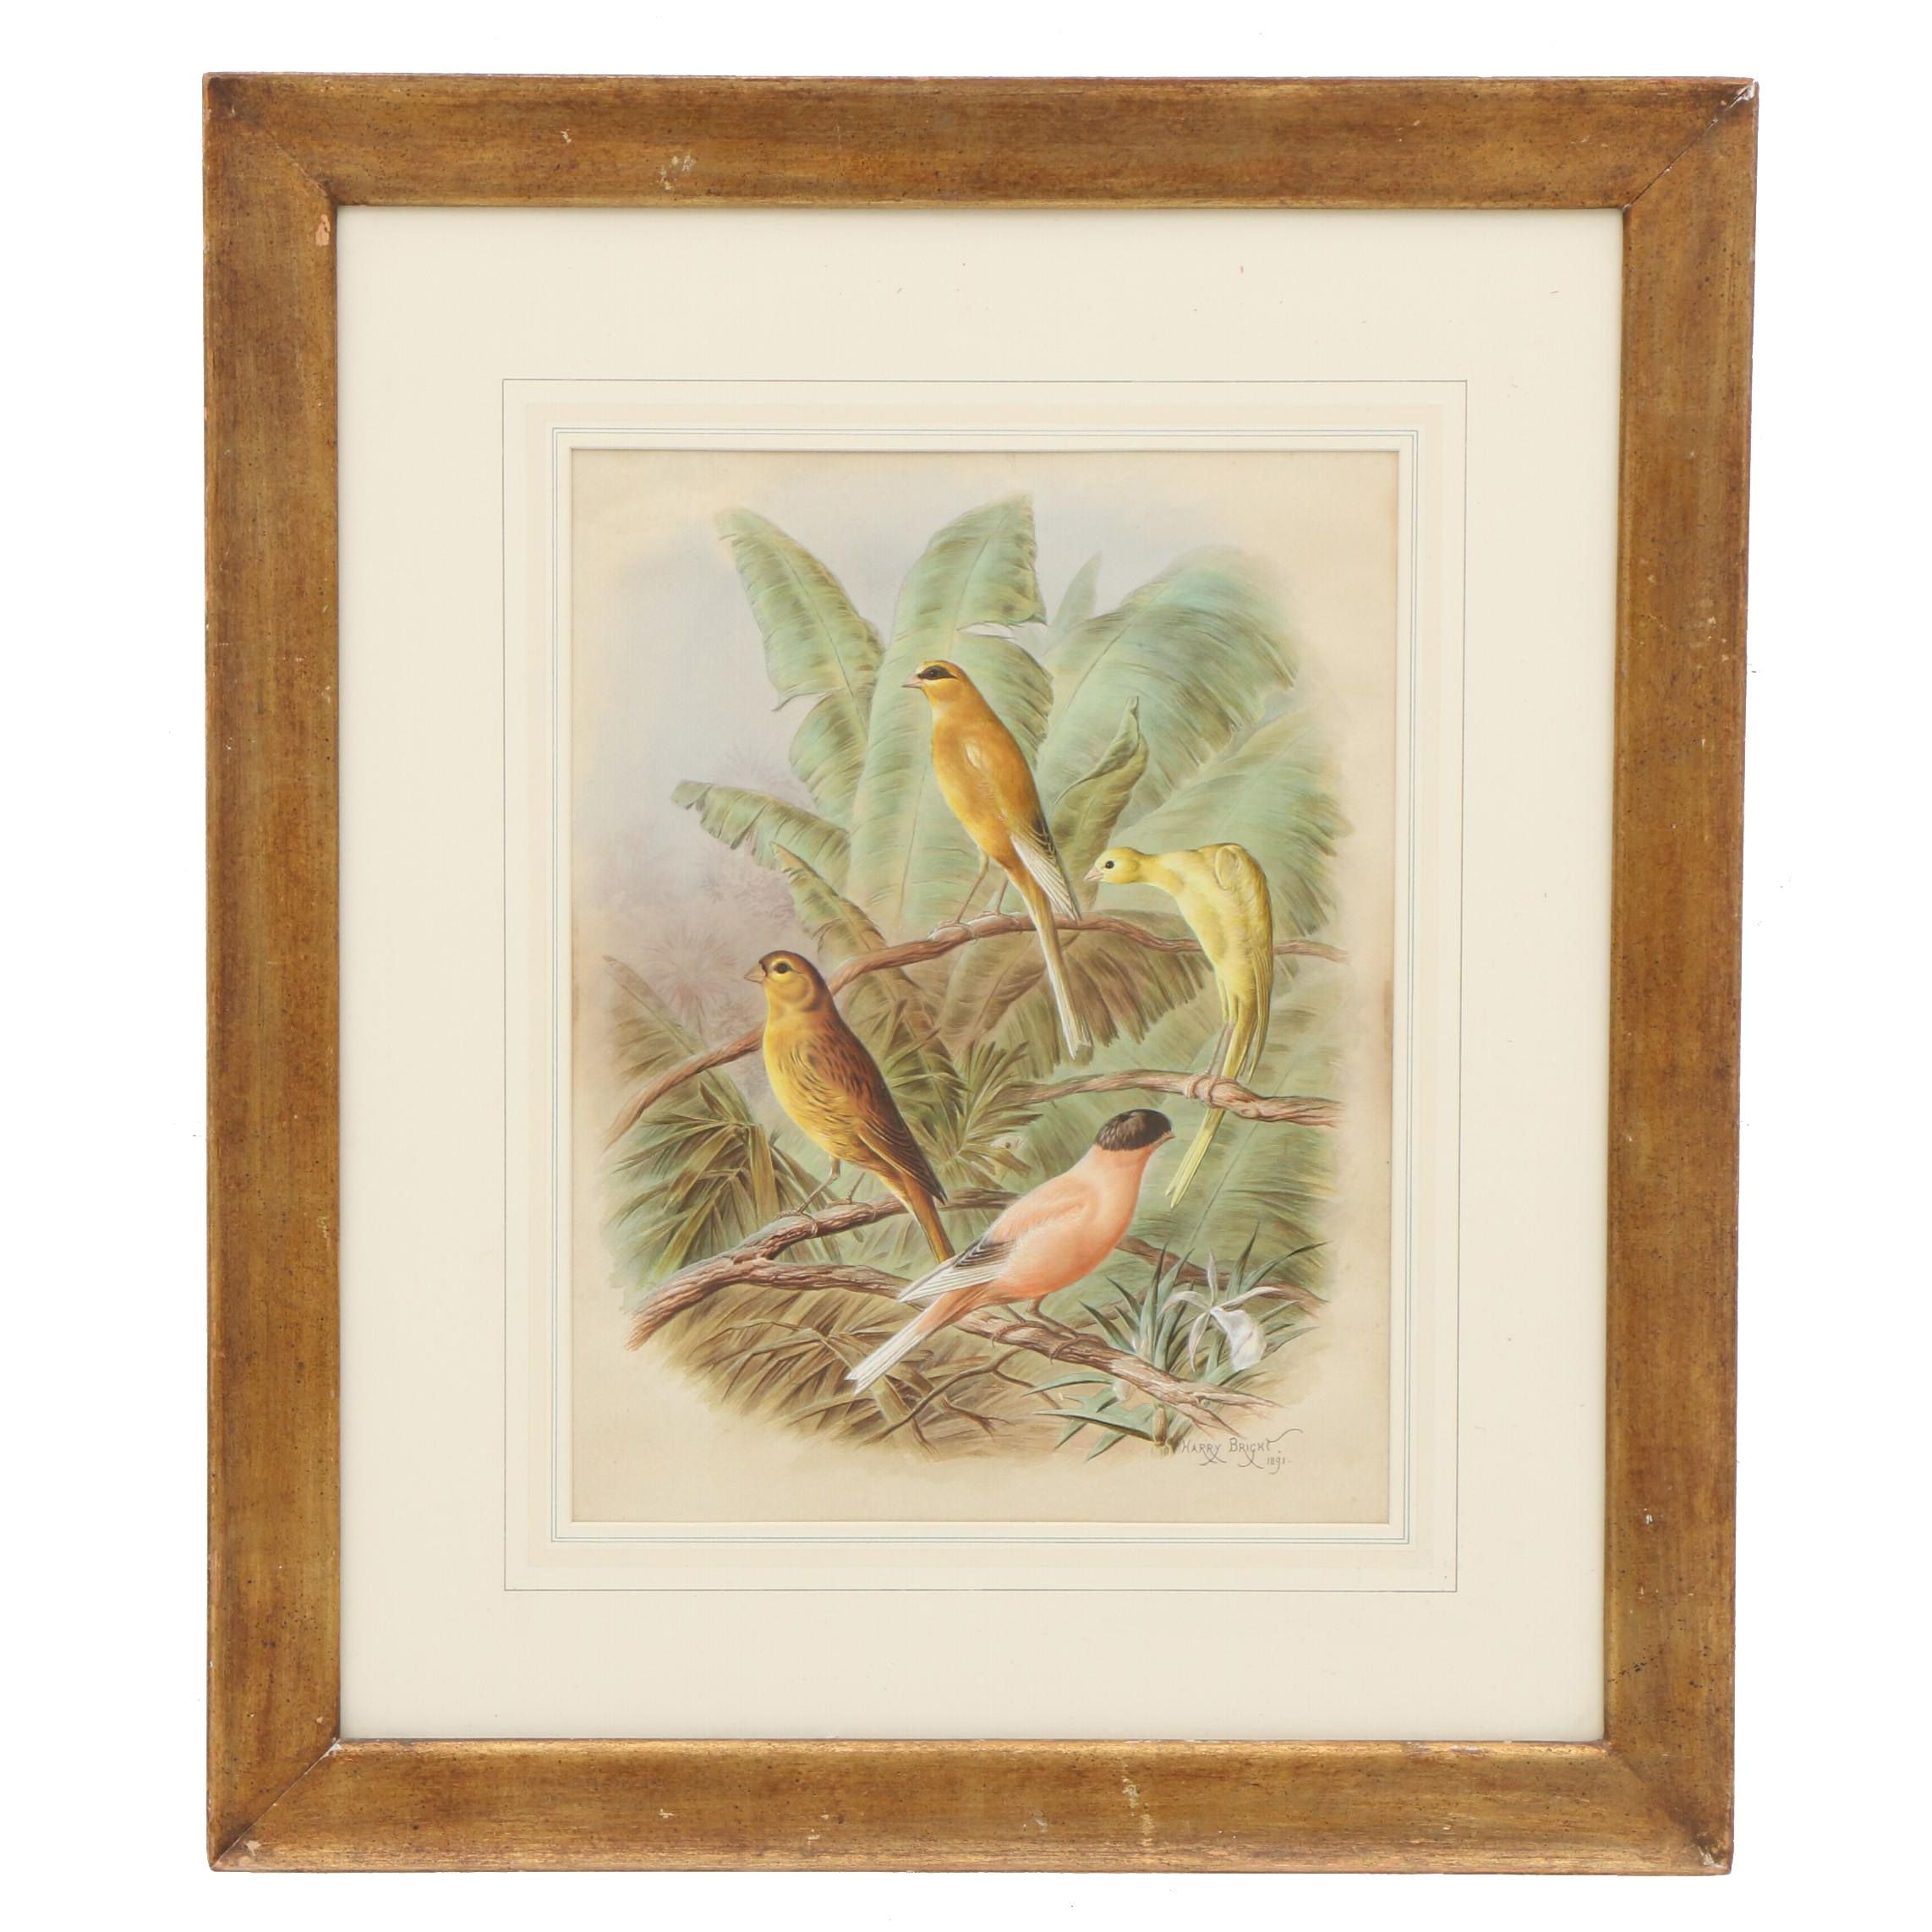 Harry Bright Ornithological Watercolor Painting